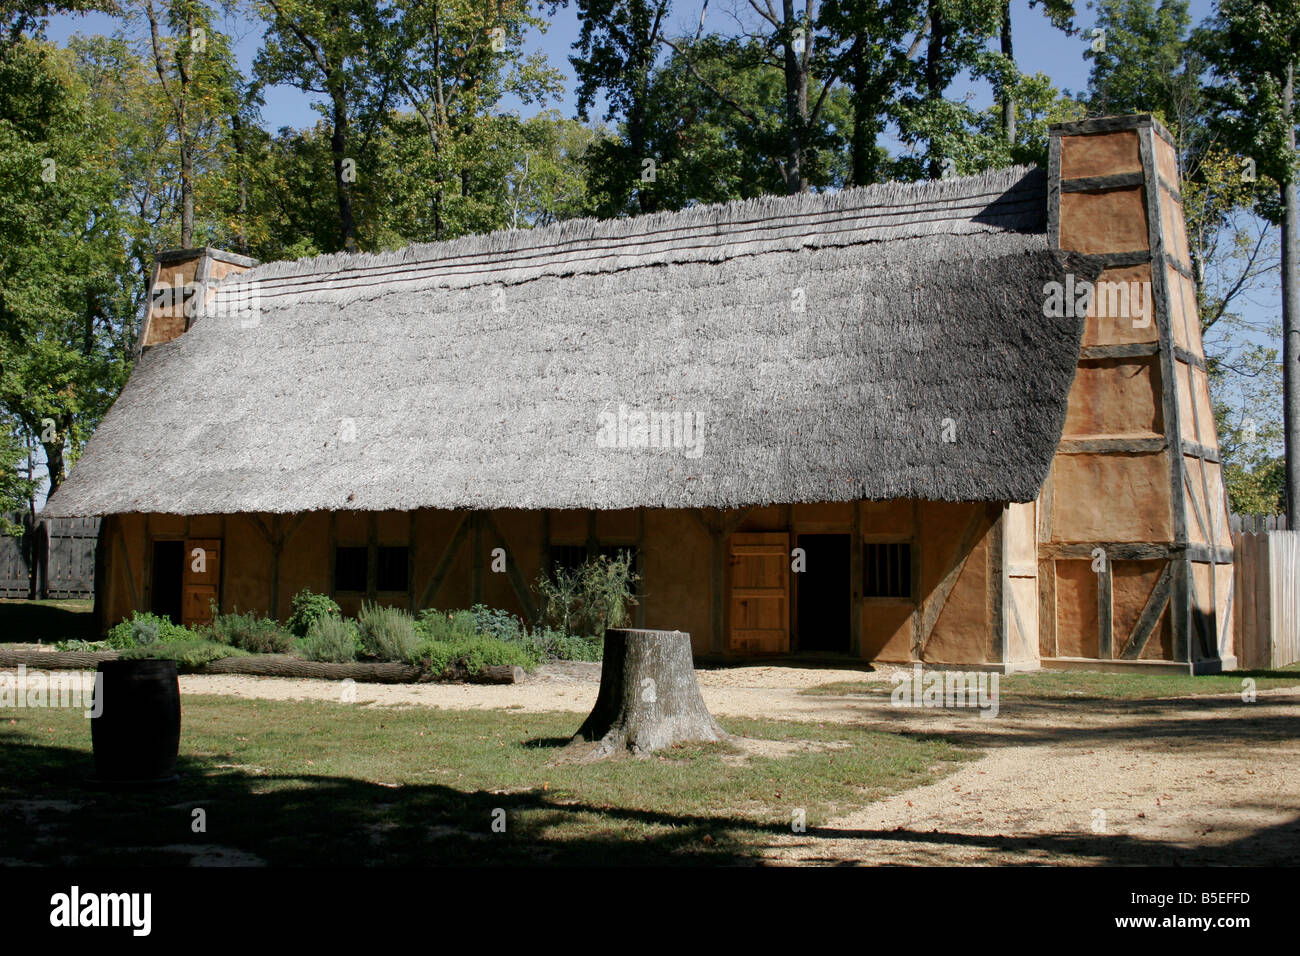 Mt.Malady in henricus, the first hospital in America. - Stock Image